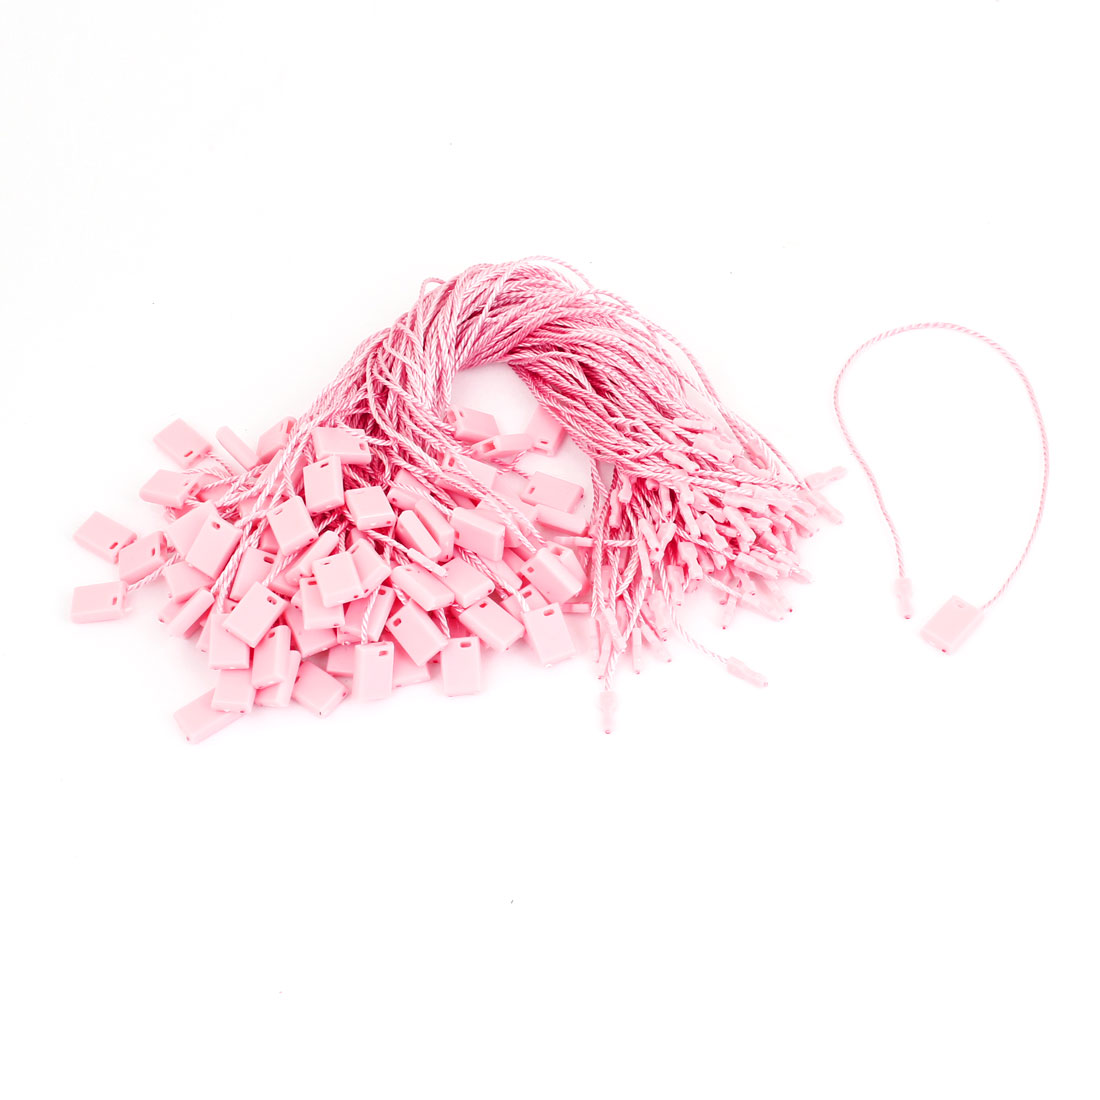 Plastic Clothes Content Label Rope Goods Price Tag Nylon Strip Pale Pink 100pcs